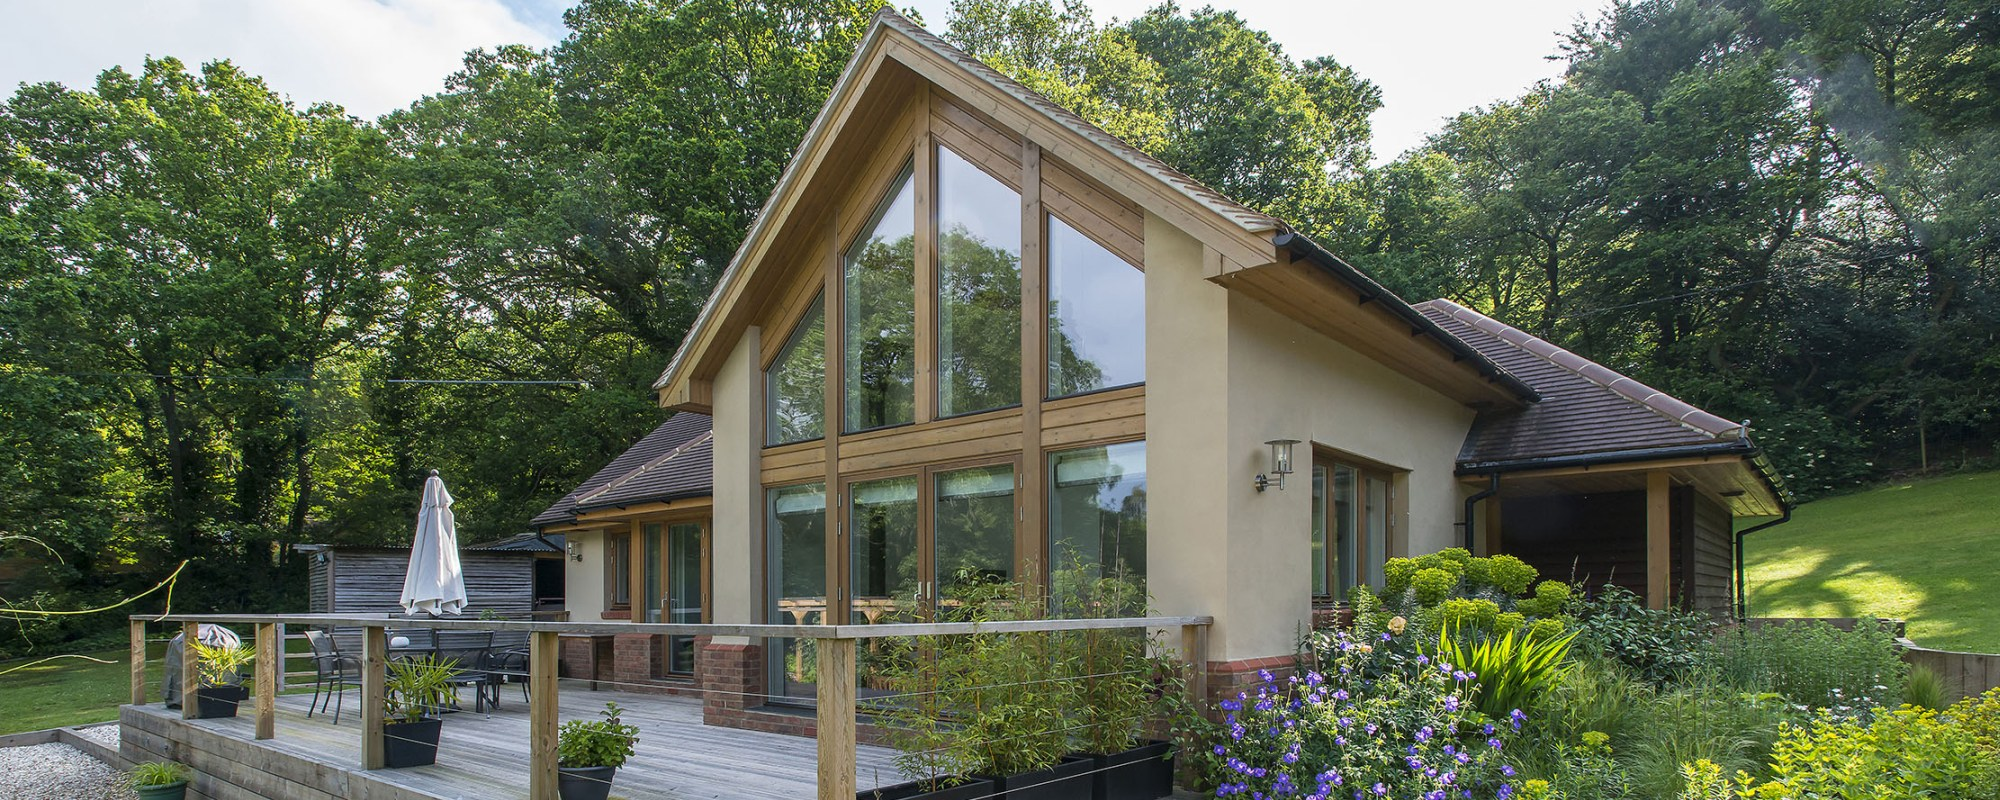 Timber frame self build homes from scandia hus for Timber frame bungalow